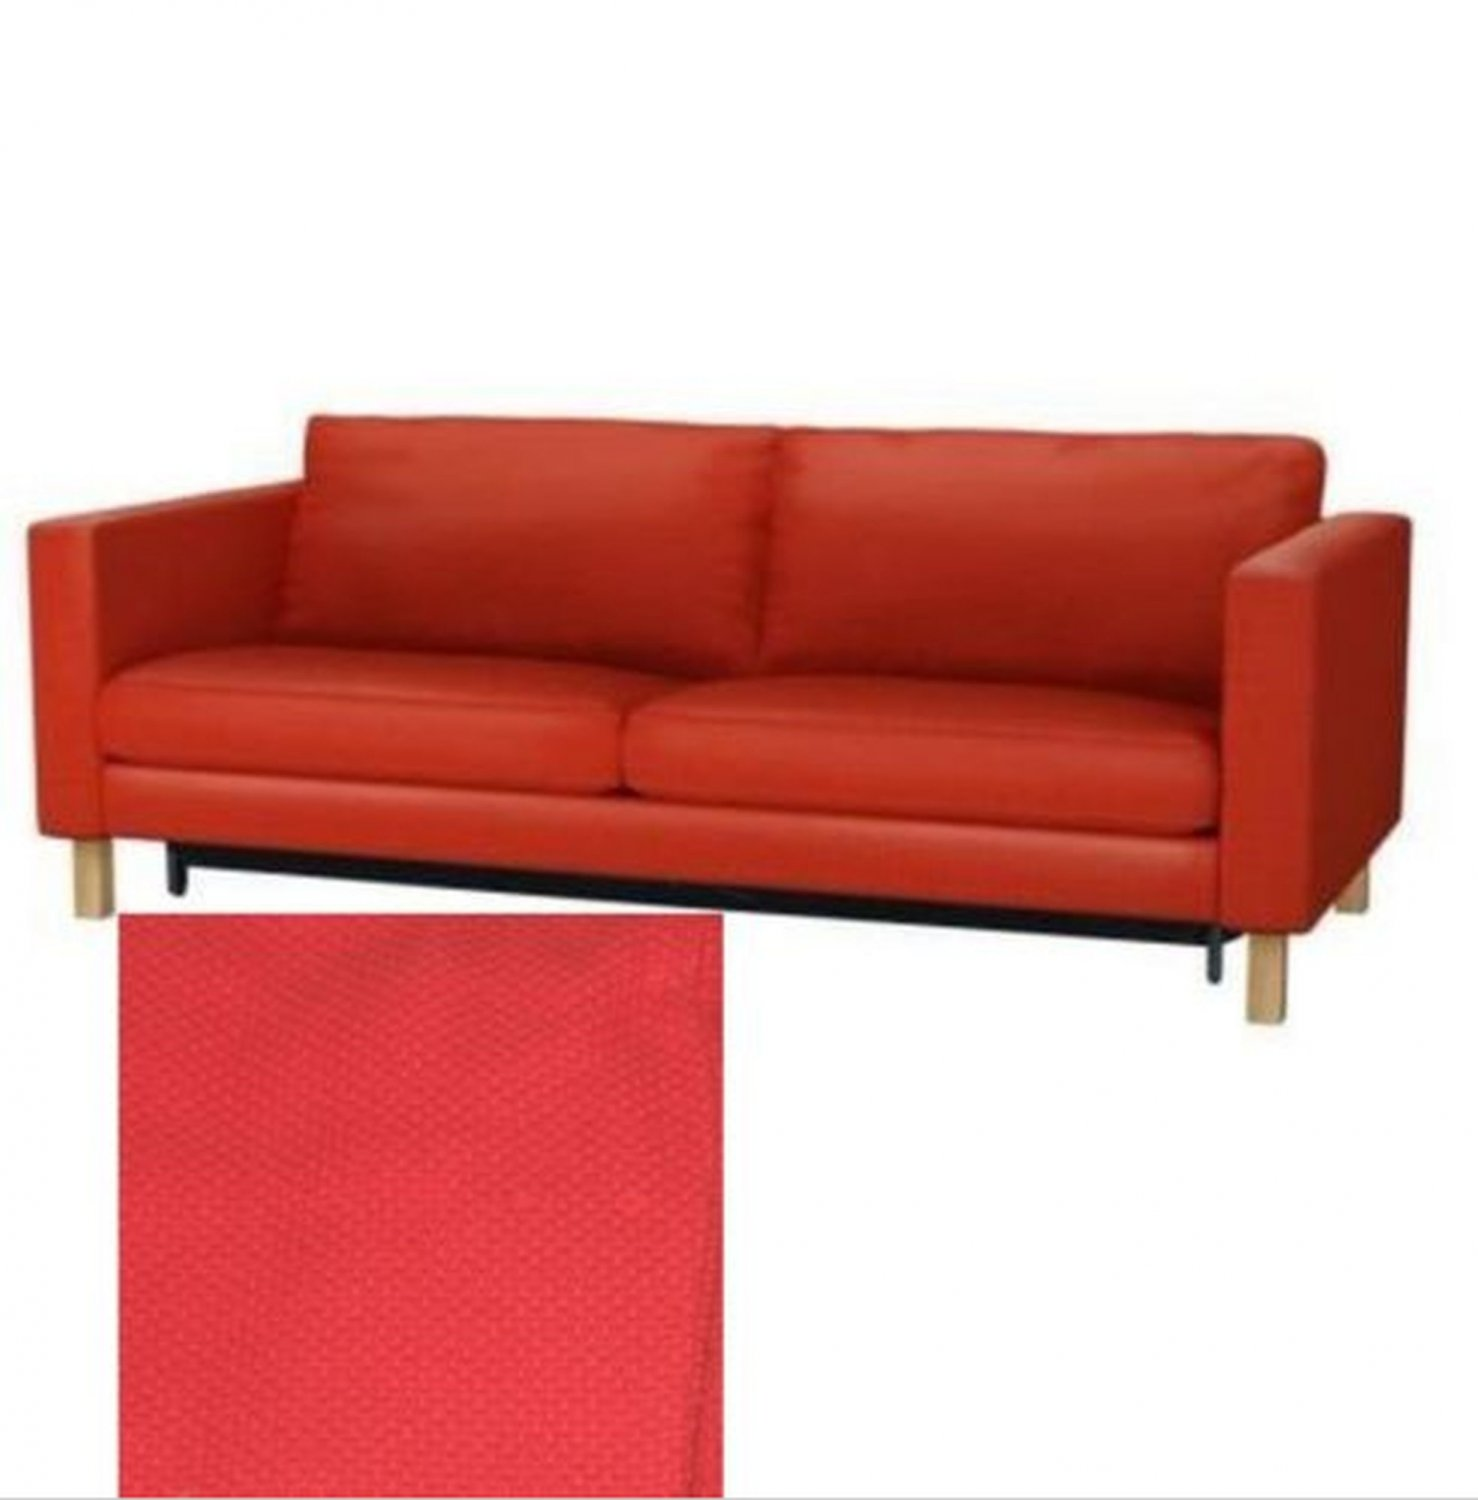 Ikea karlstad sofa bed sofabed slipcover cover korndal red for Sofa bed cover